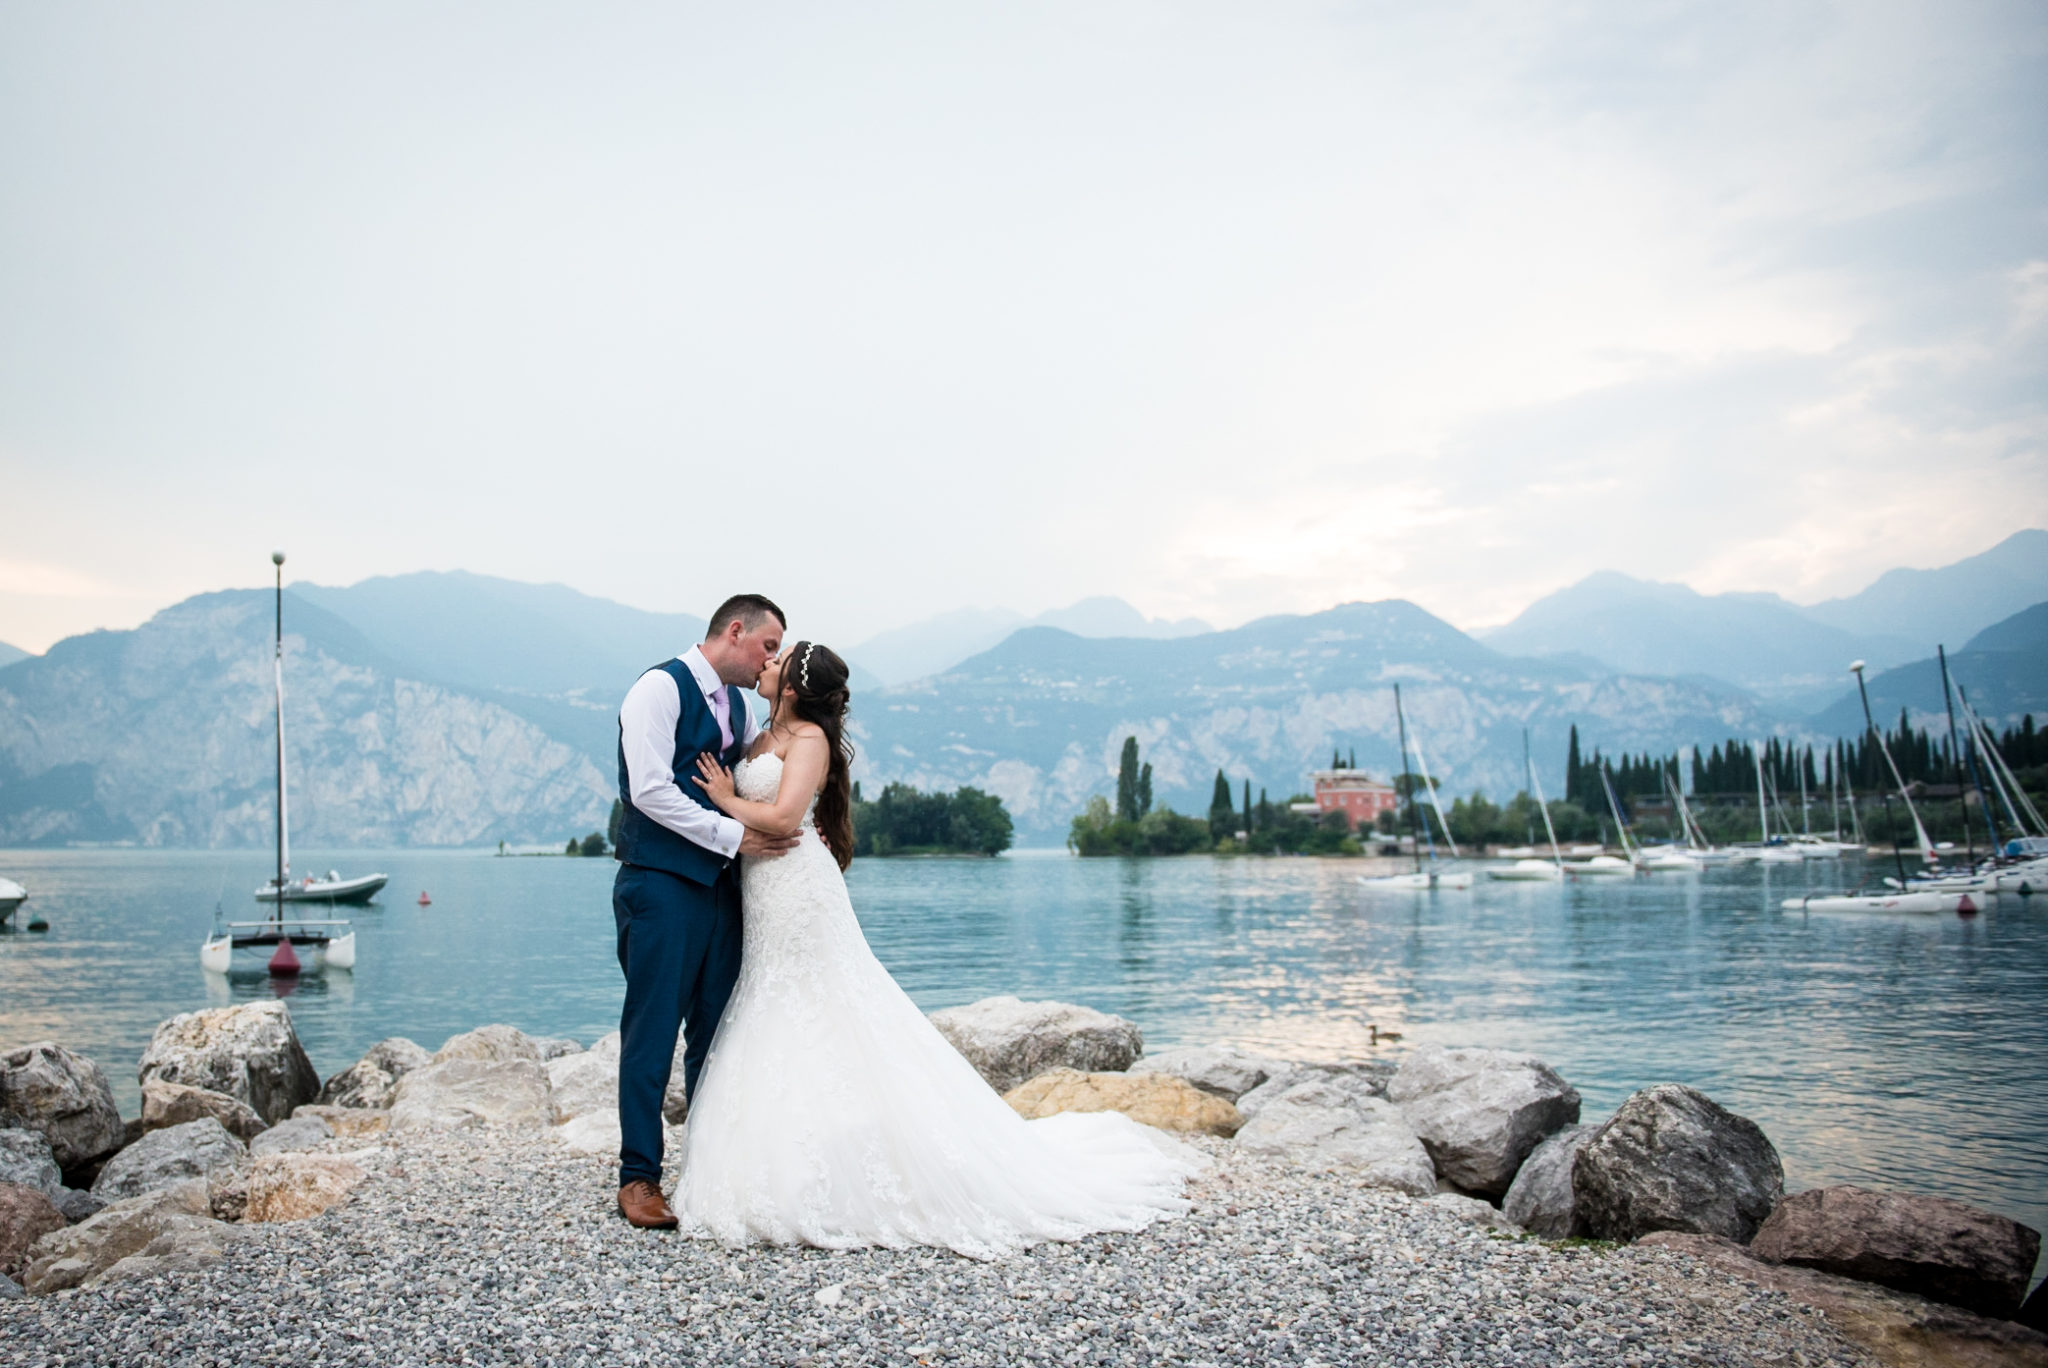 wedding kiss at lake Garda